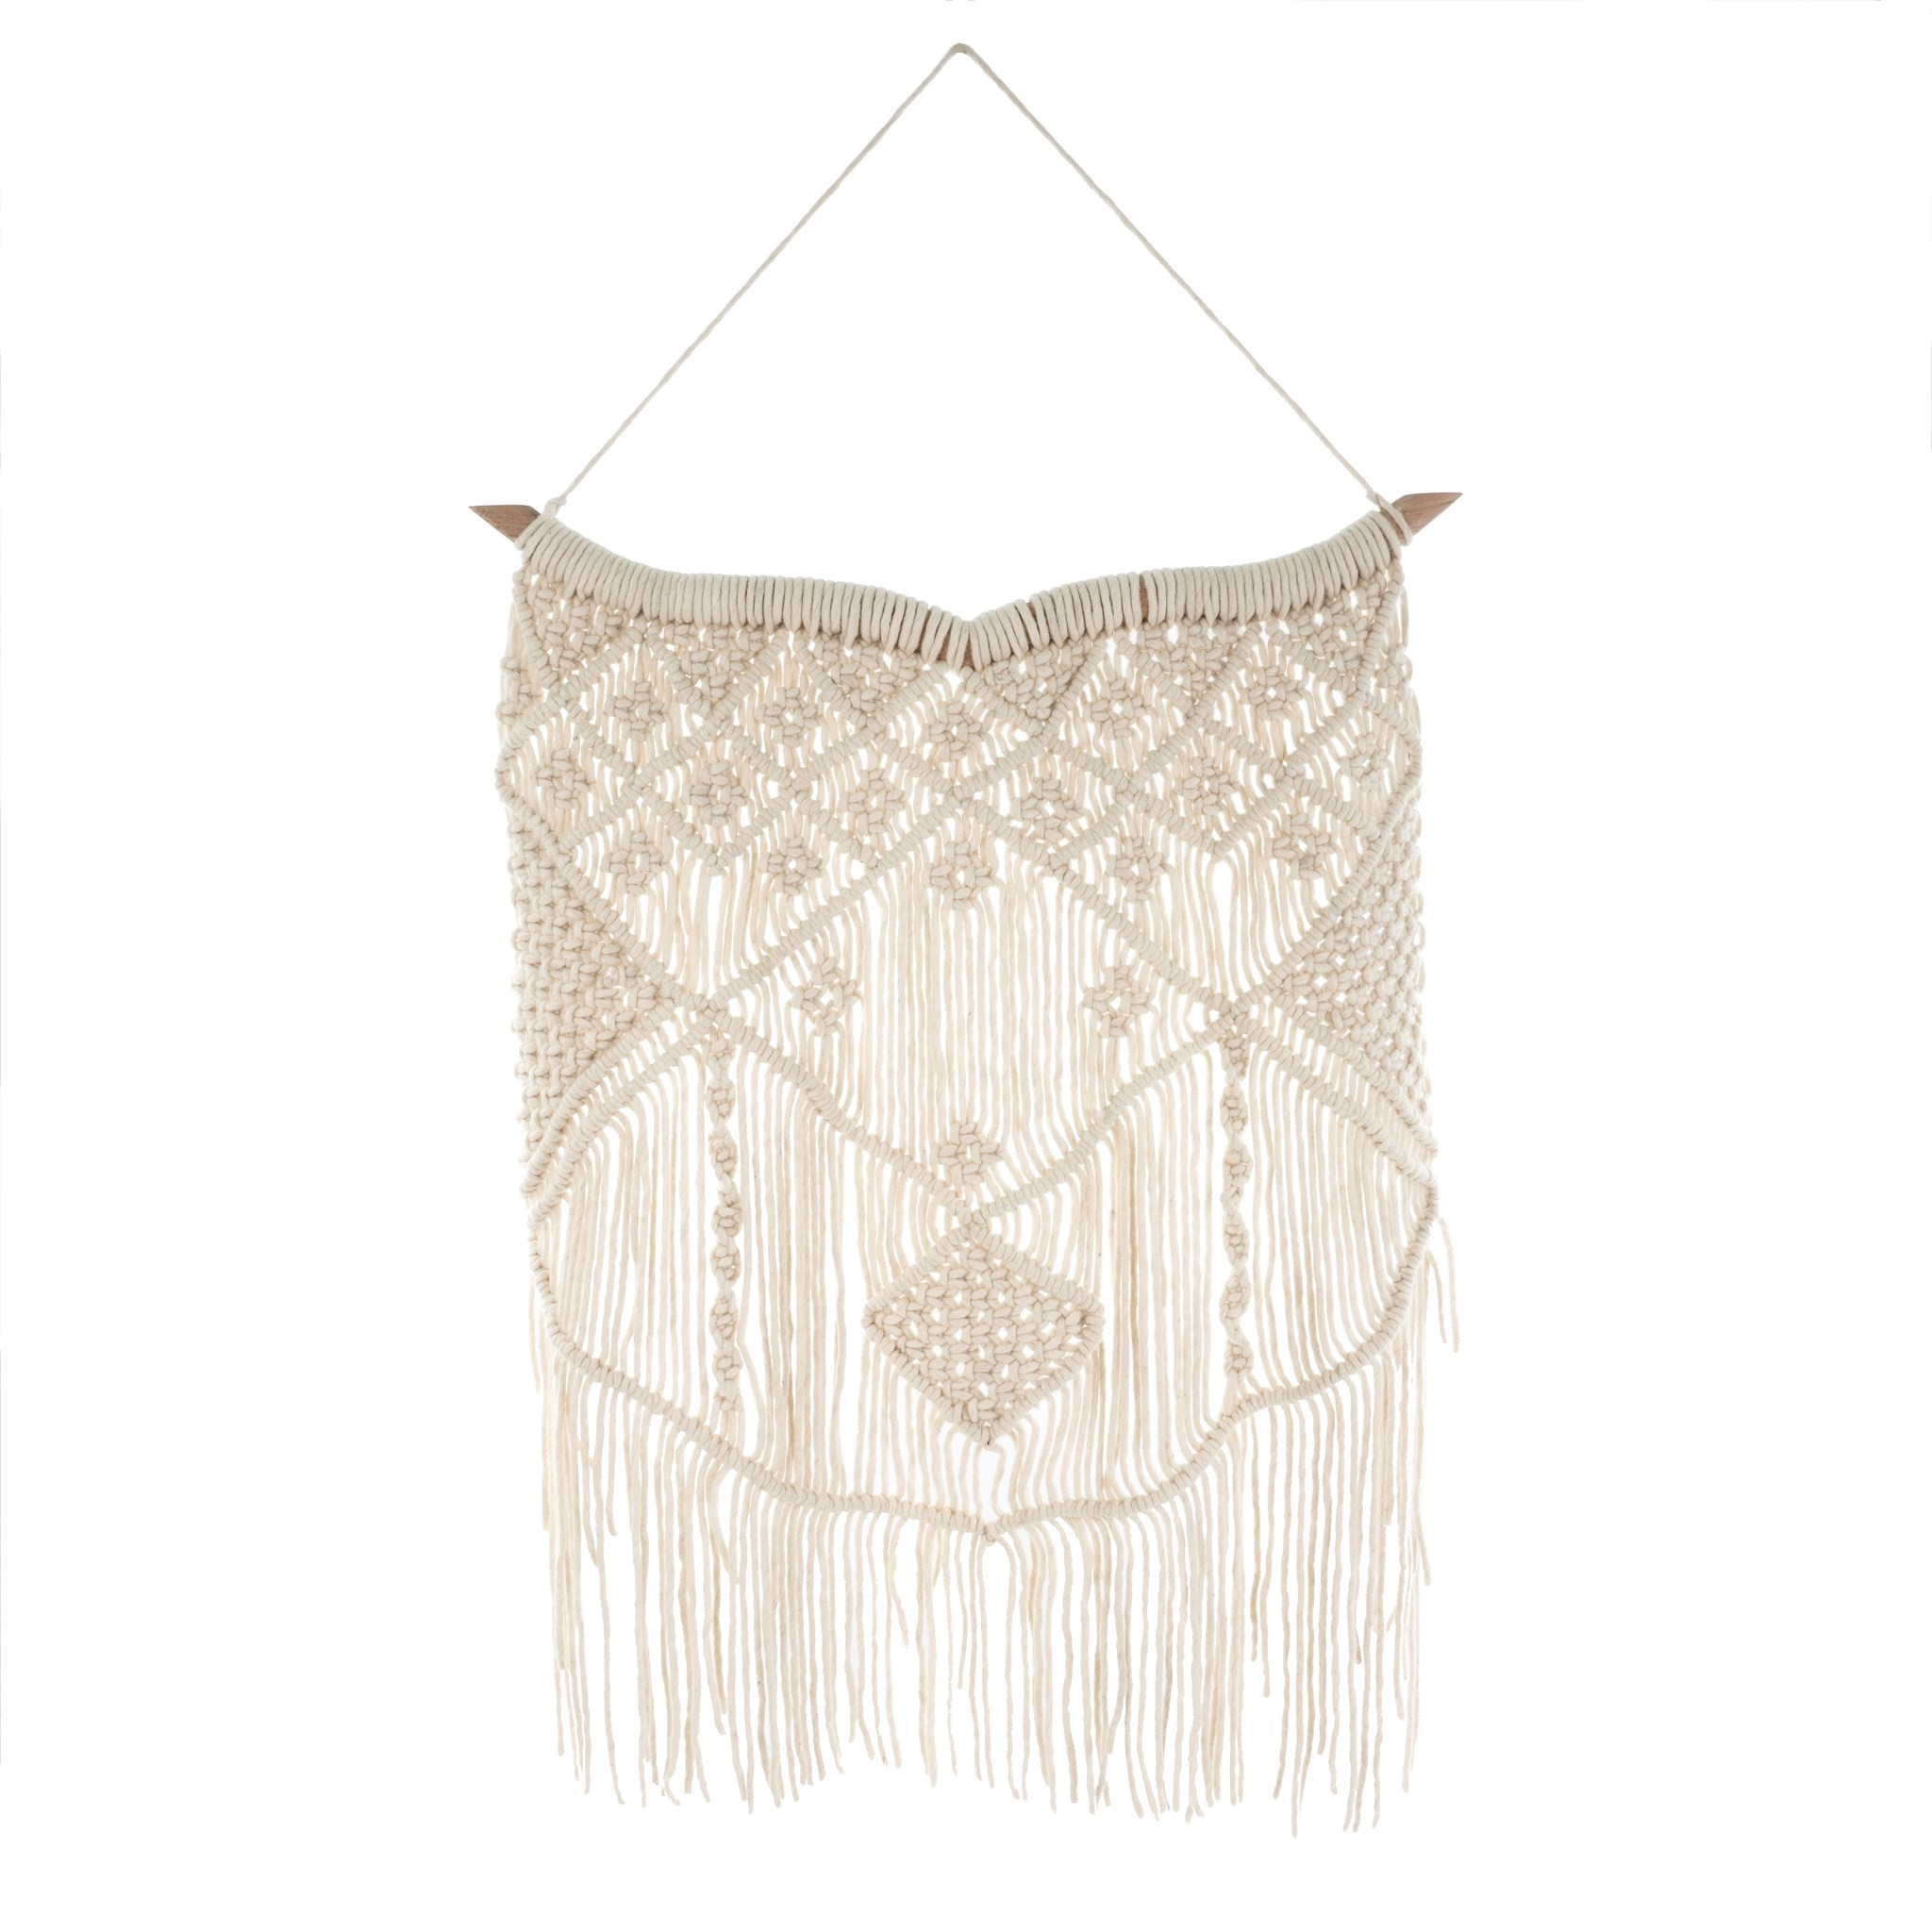 Wool Macrame Wall Hanging in Natural, Amanda's House Of Elegance  (Special Order Only)   ($86.95)